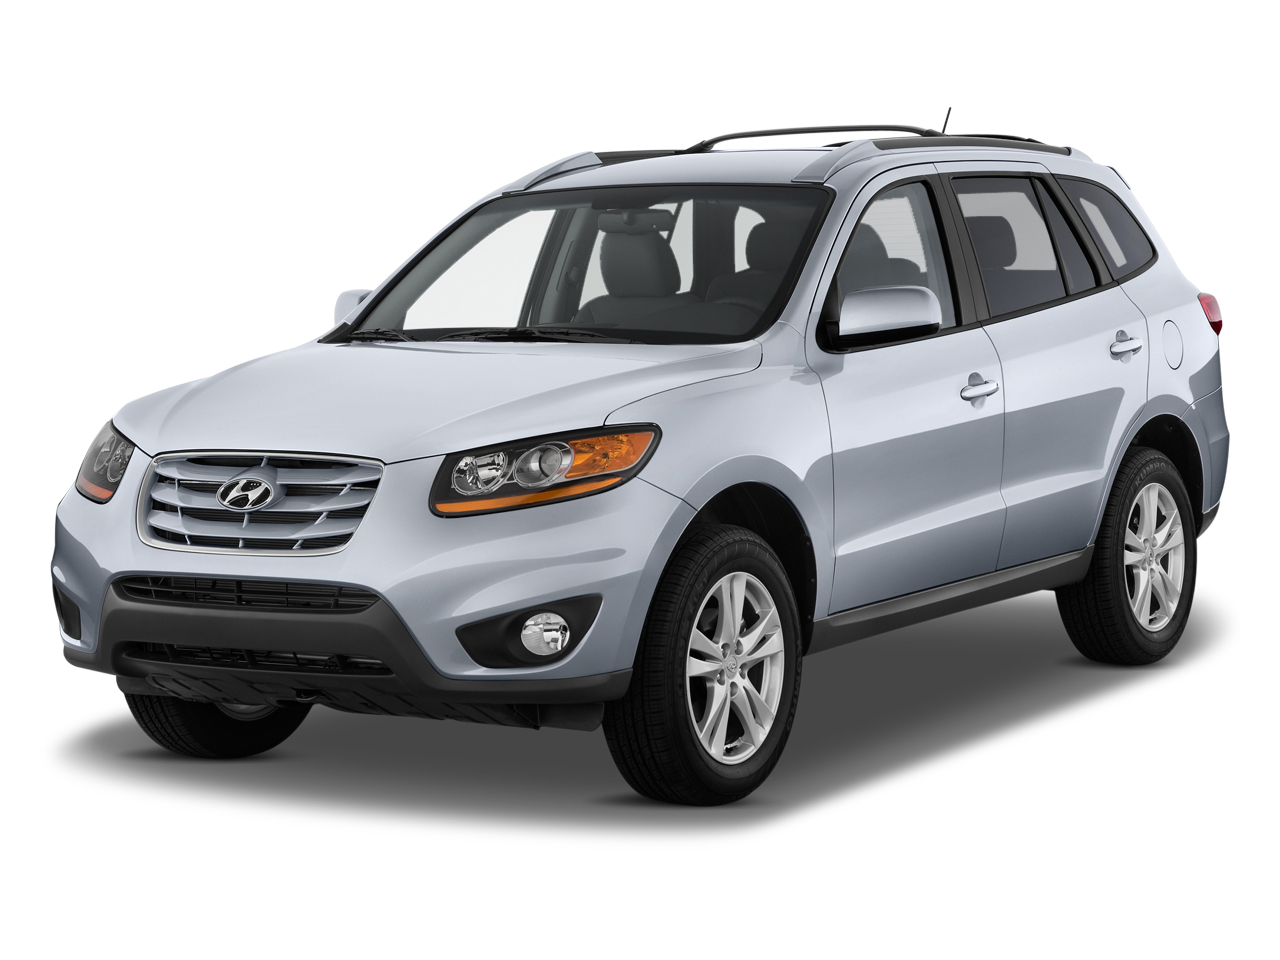 2010 hyundai santa fe review ratings specs prices and photos the car connection. Black Bedroom Furniture Sets. Home Design Ideas